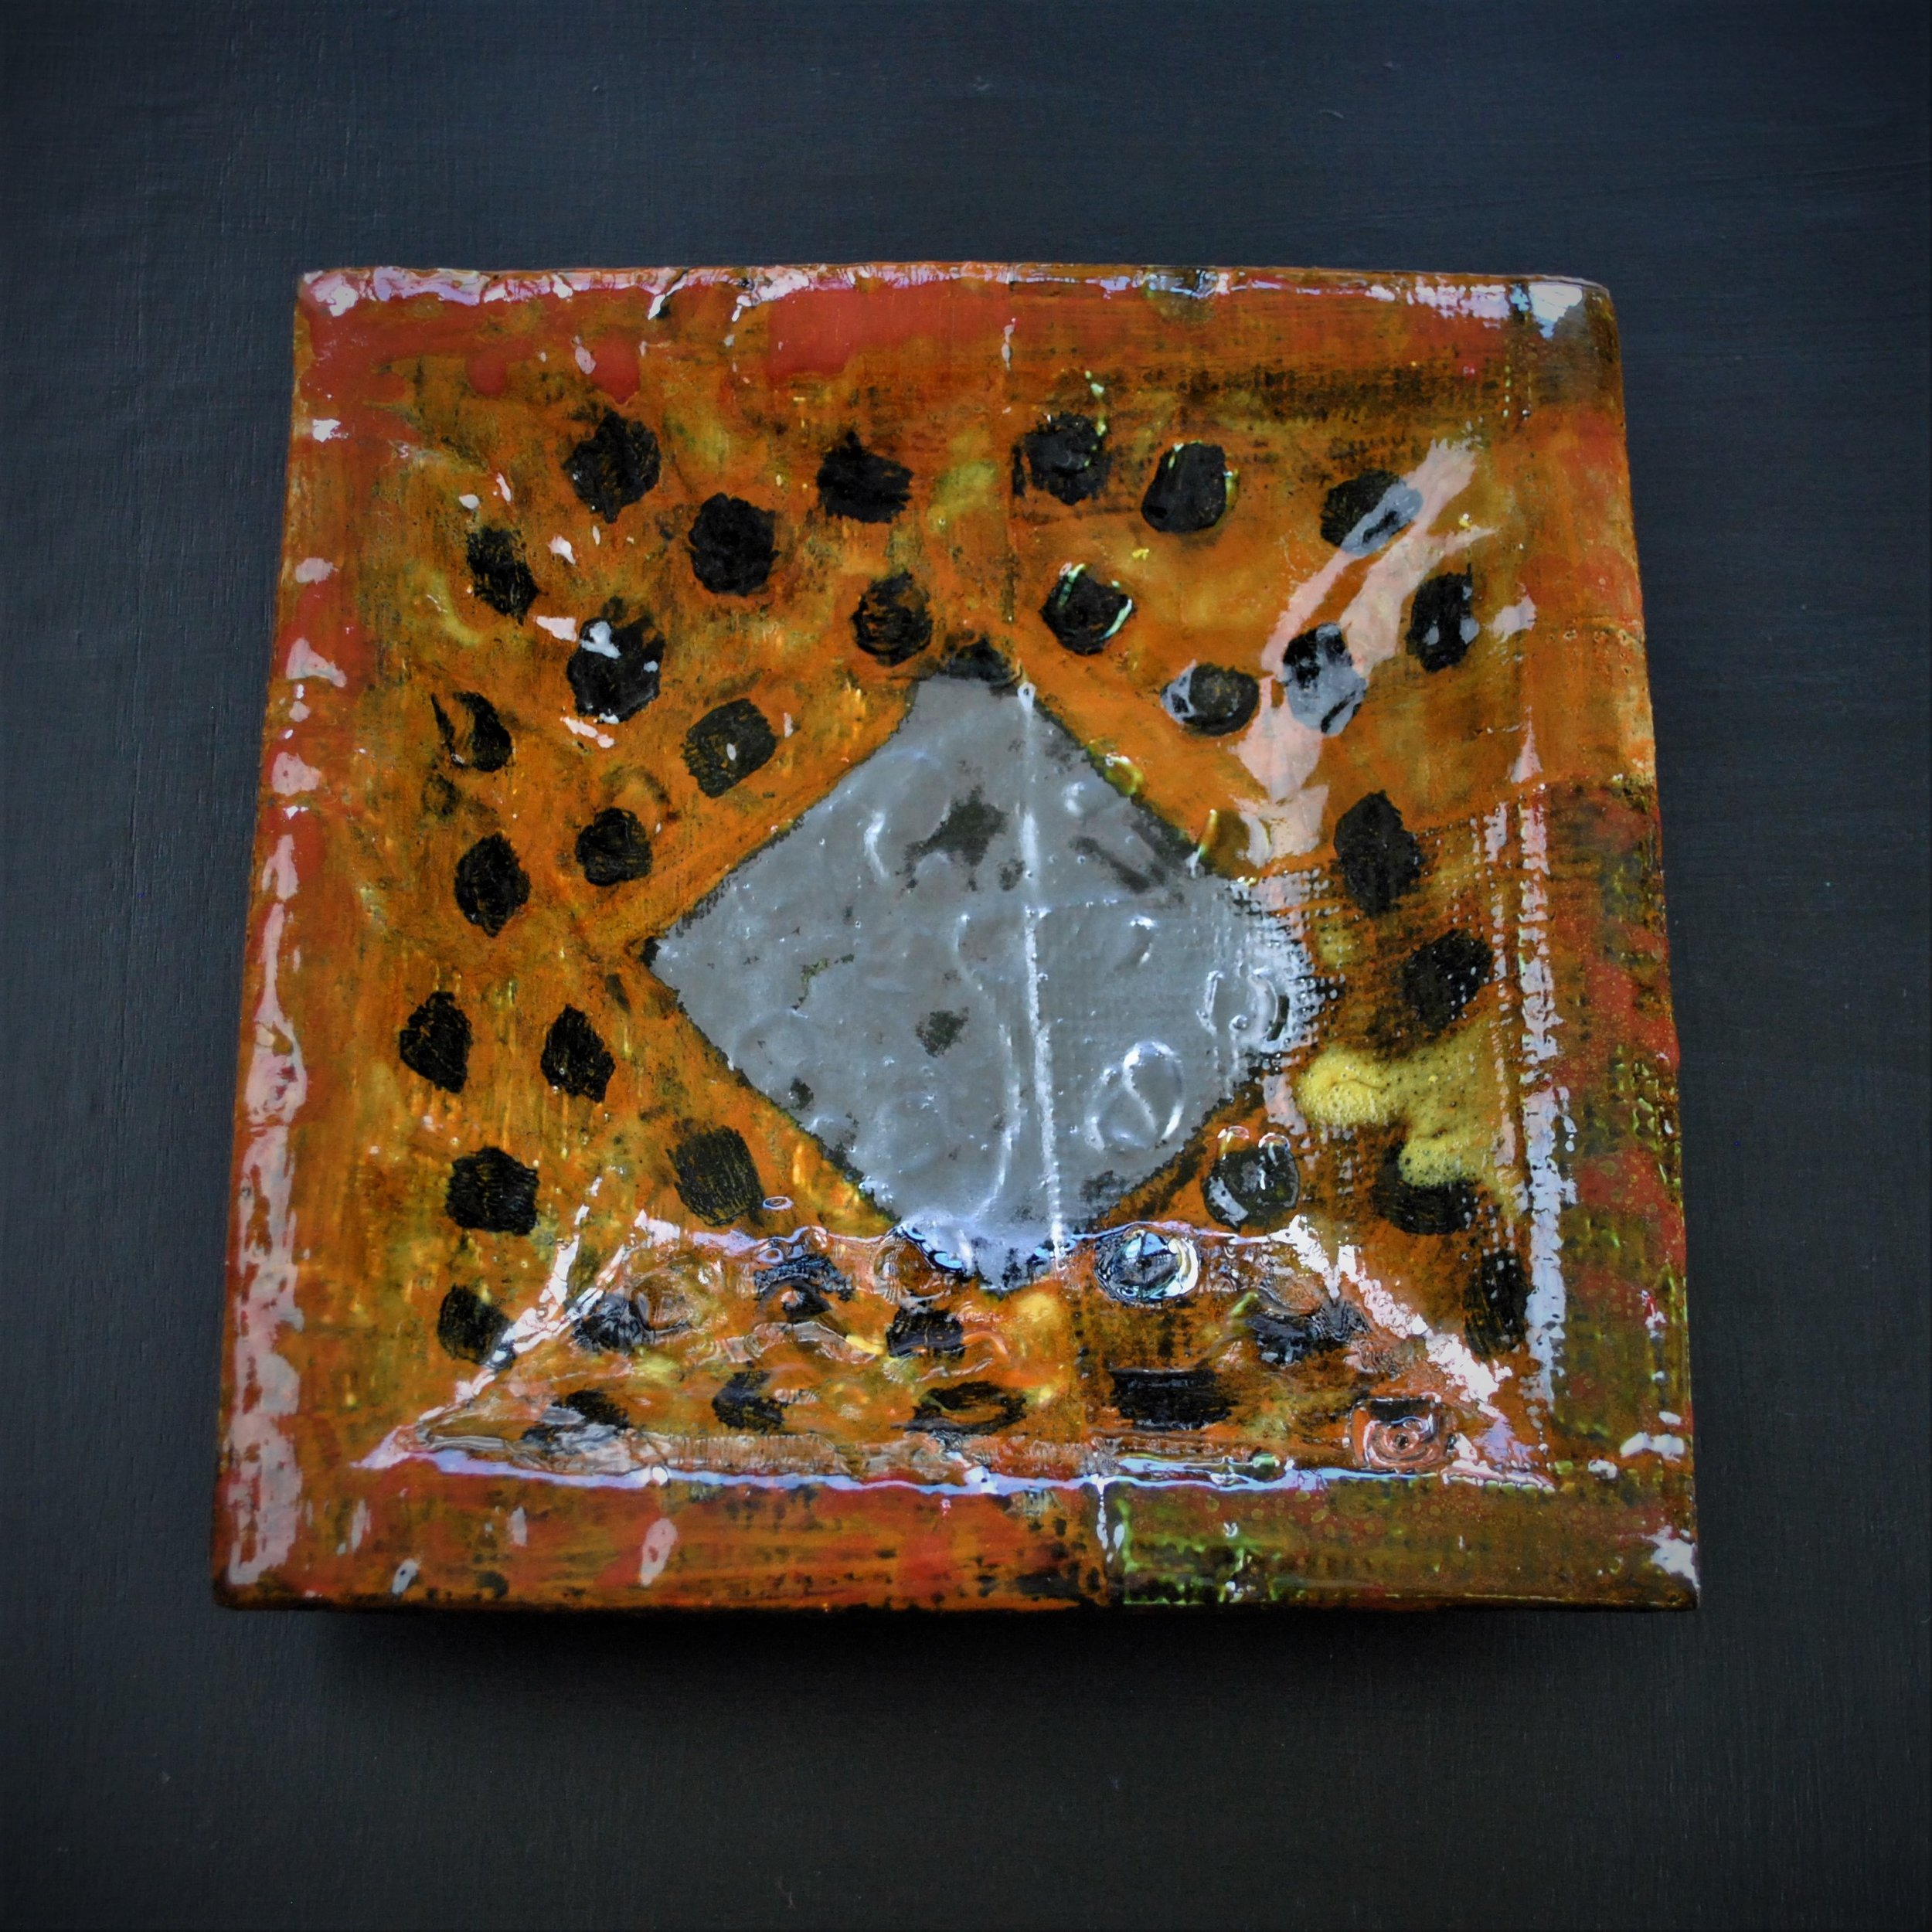 Mike Cain 2019 Silver diamond with dots (Square edit) DSC_6226 (2).JPG